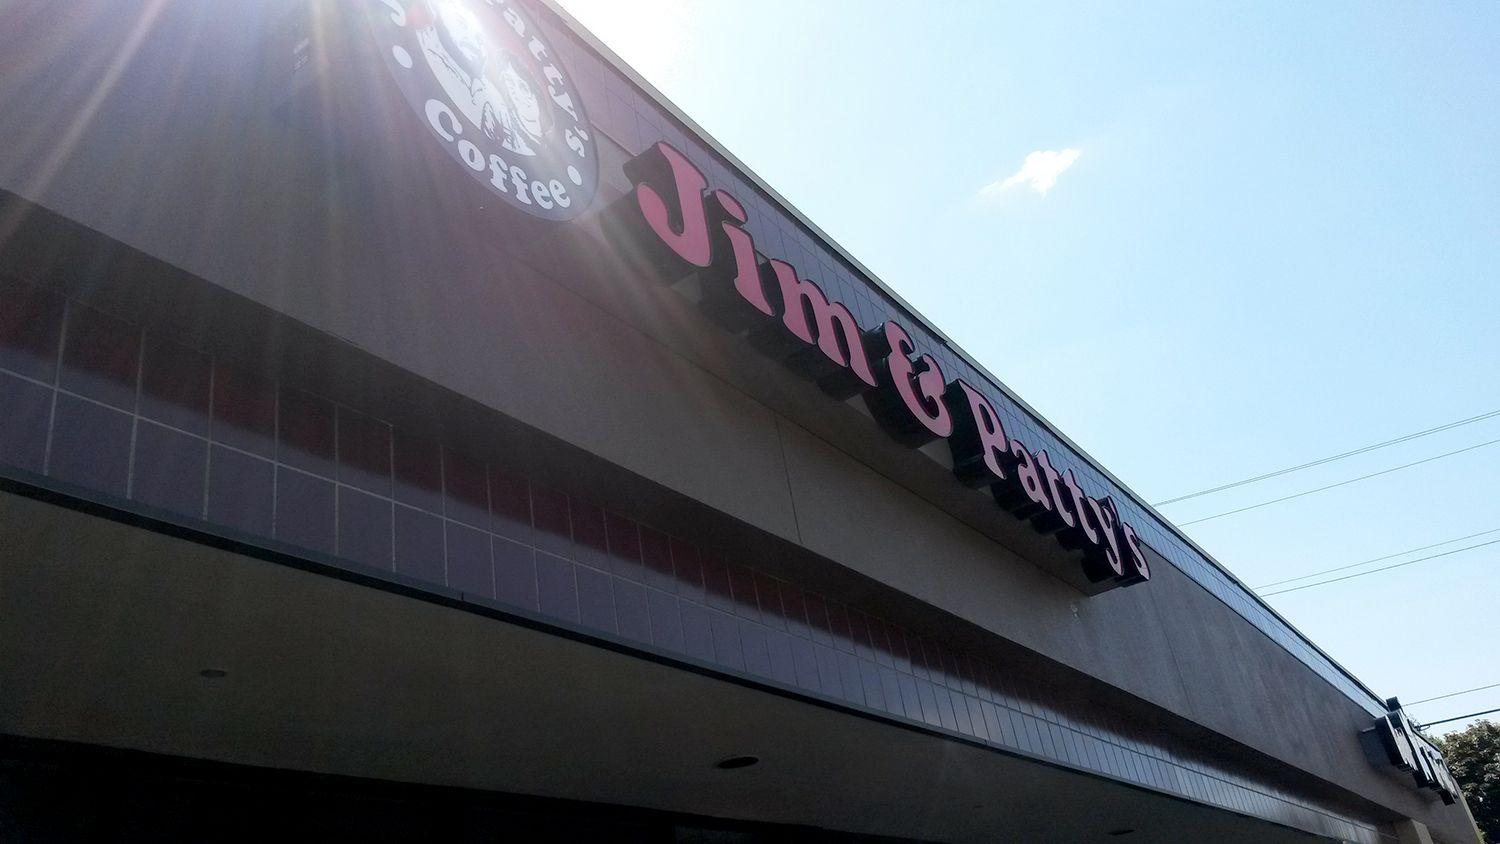 Jim and Patty's